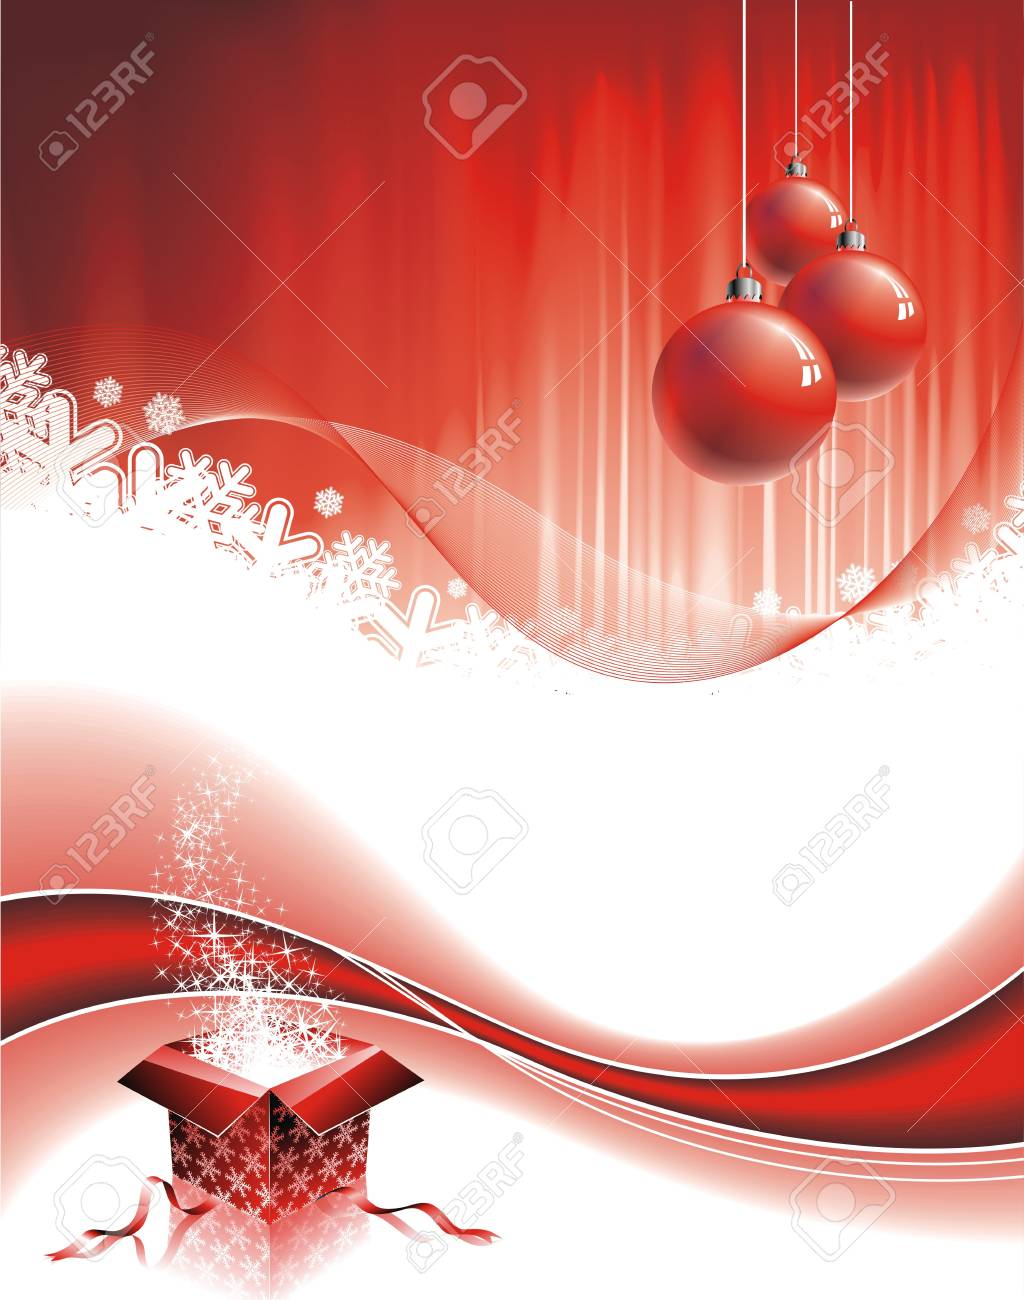 Christmas illustration with gift box on red background Stock Vector - 7896736